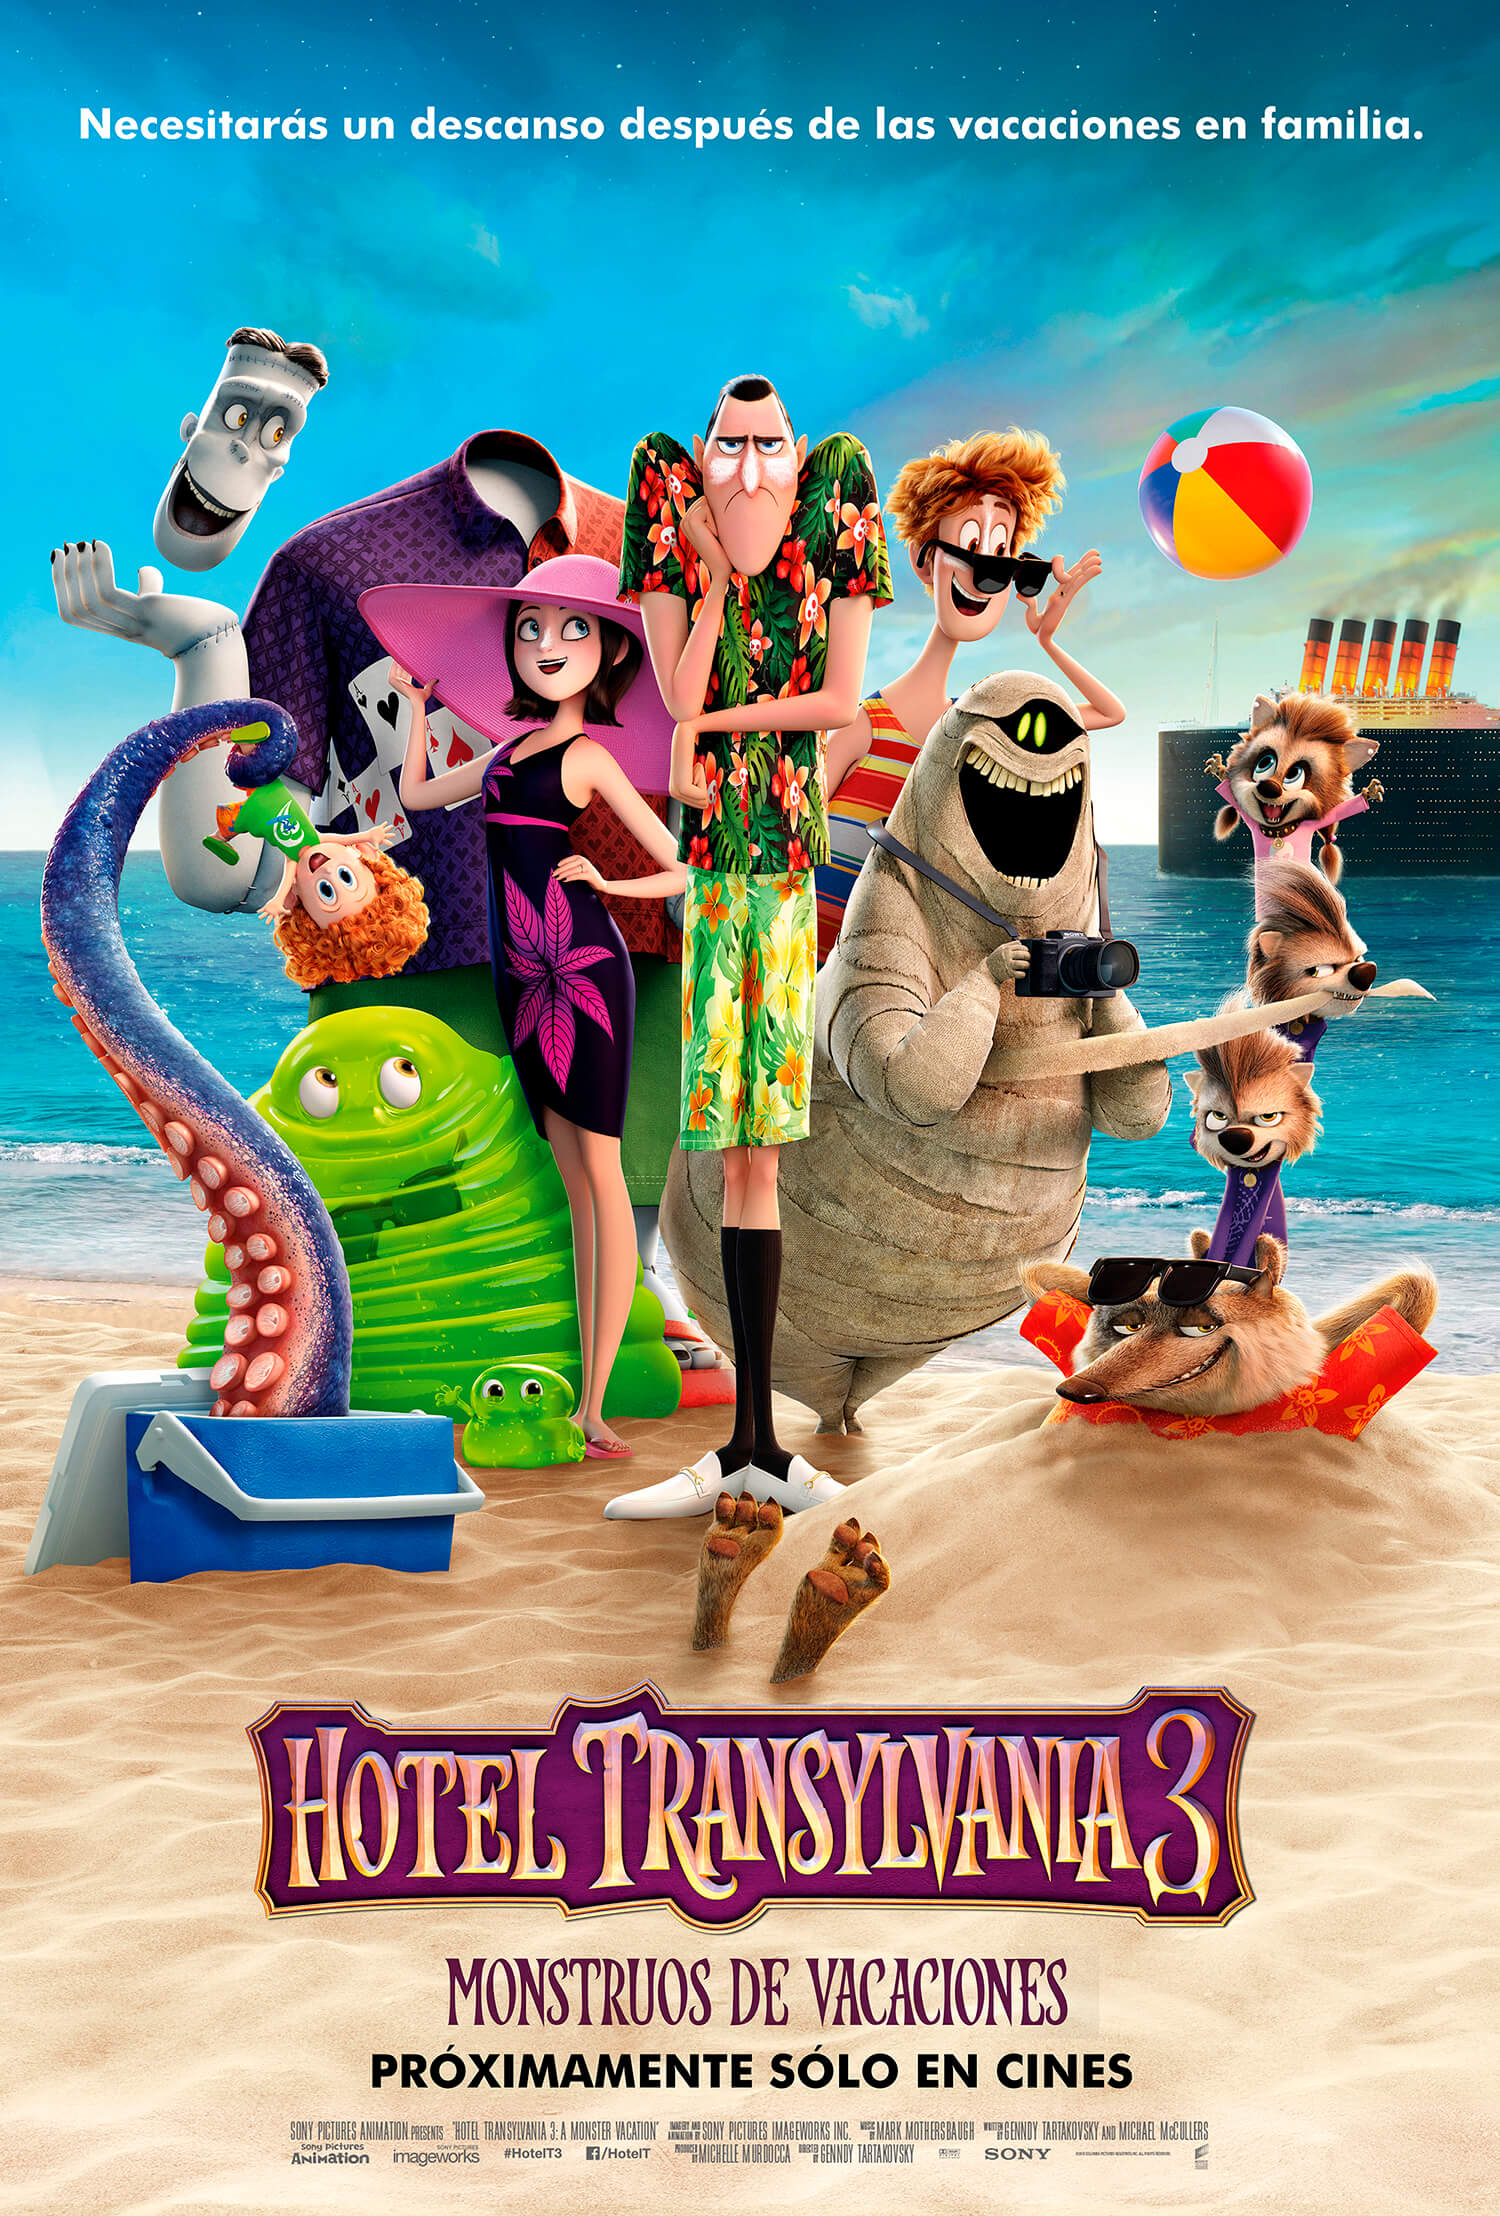 https://www.andesfilms.com.pe/hotel-transylvania-3-a-monster-vacation/